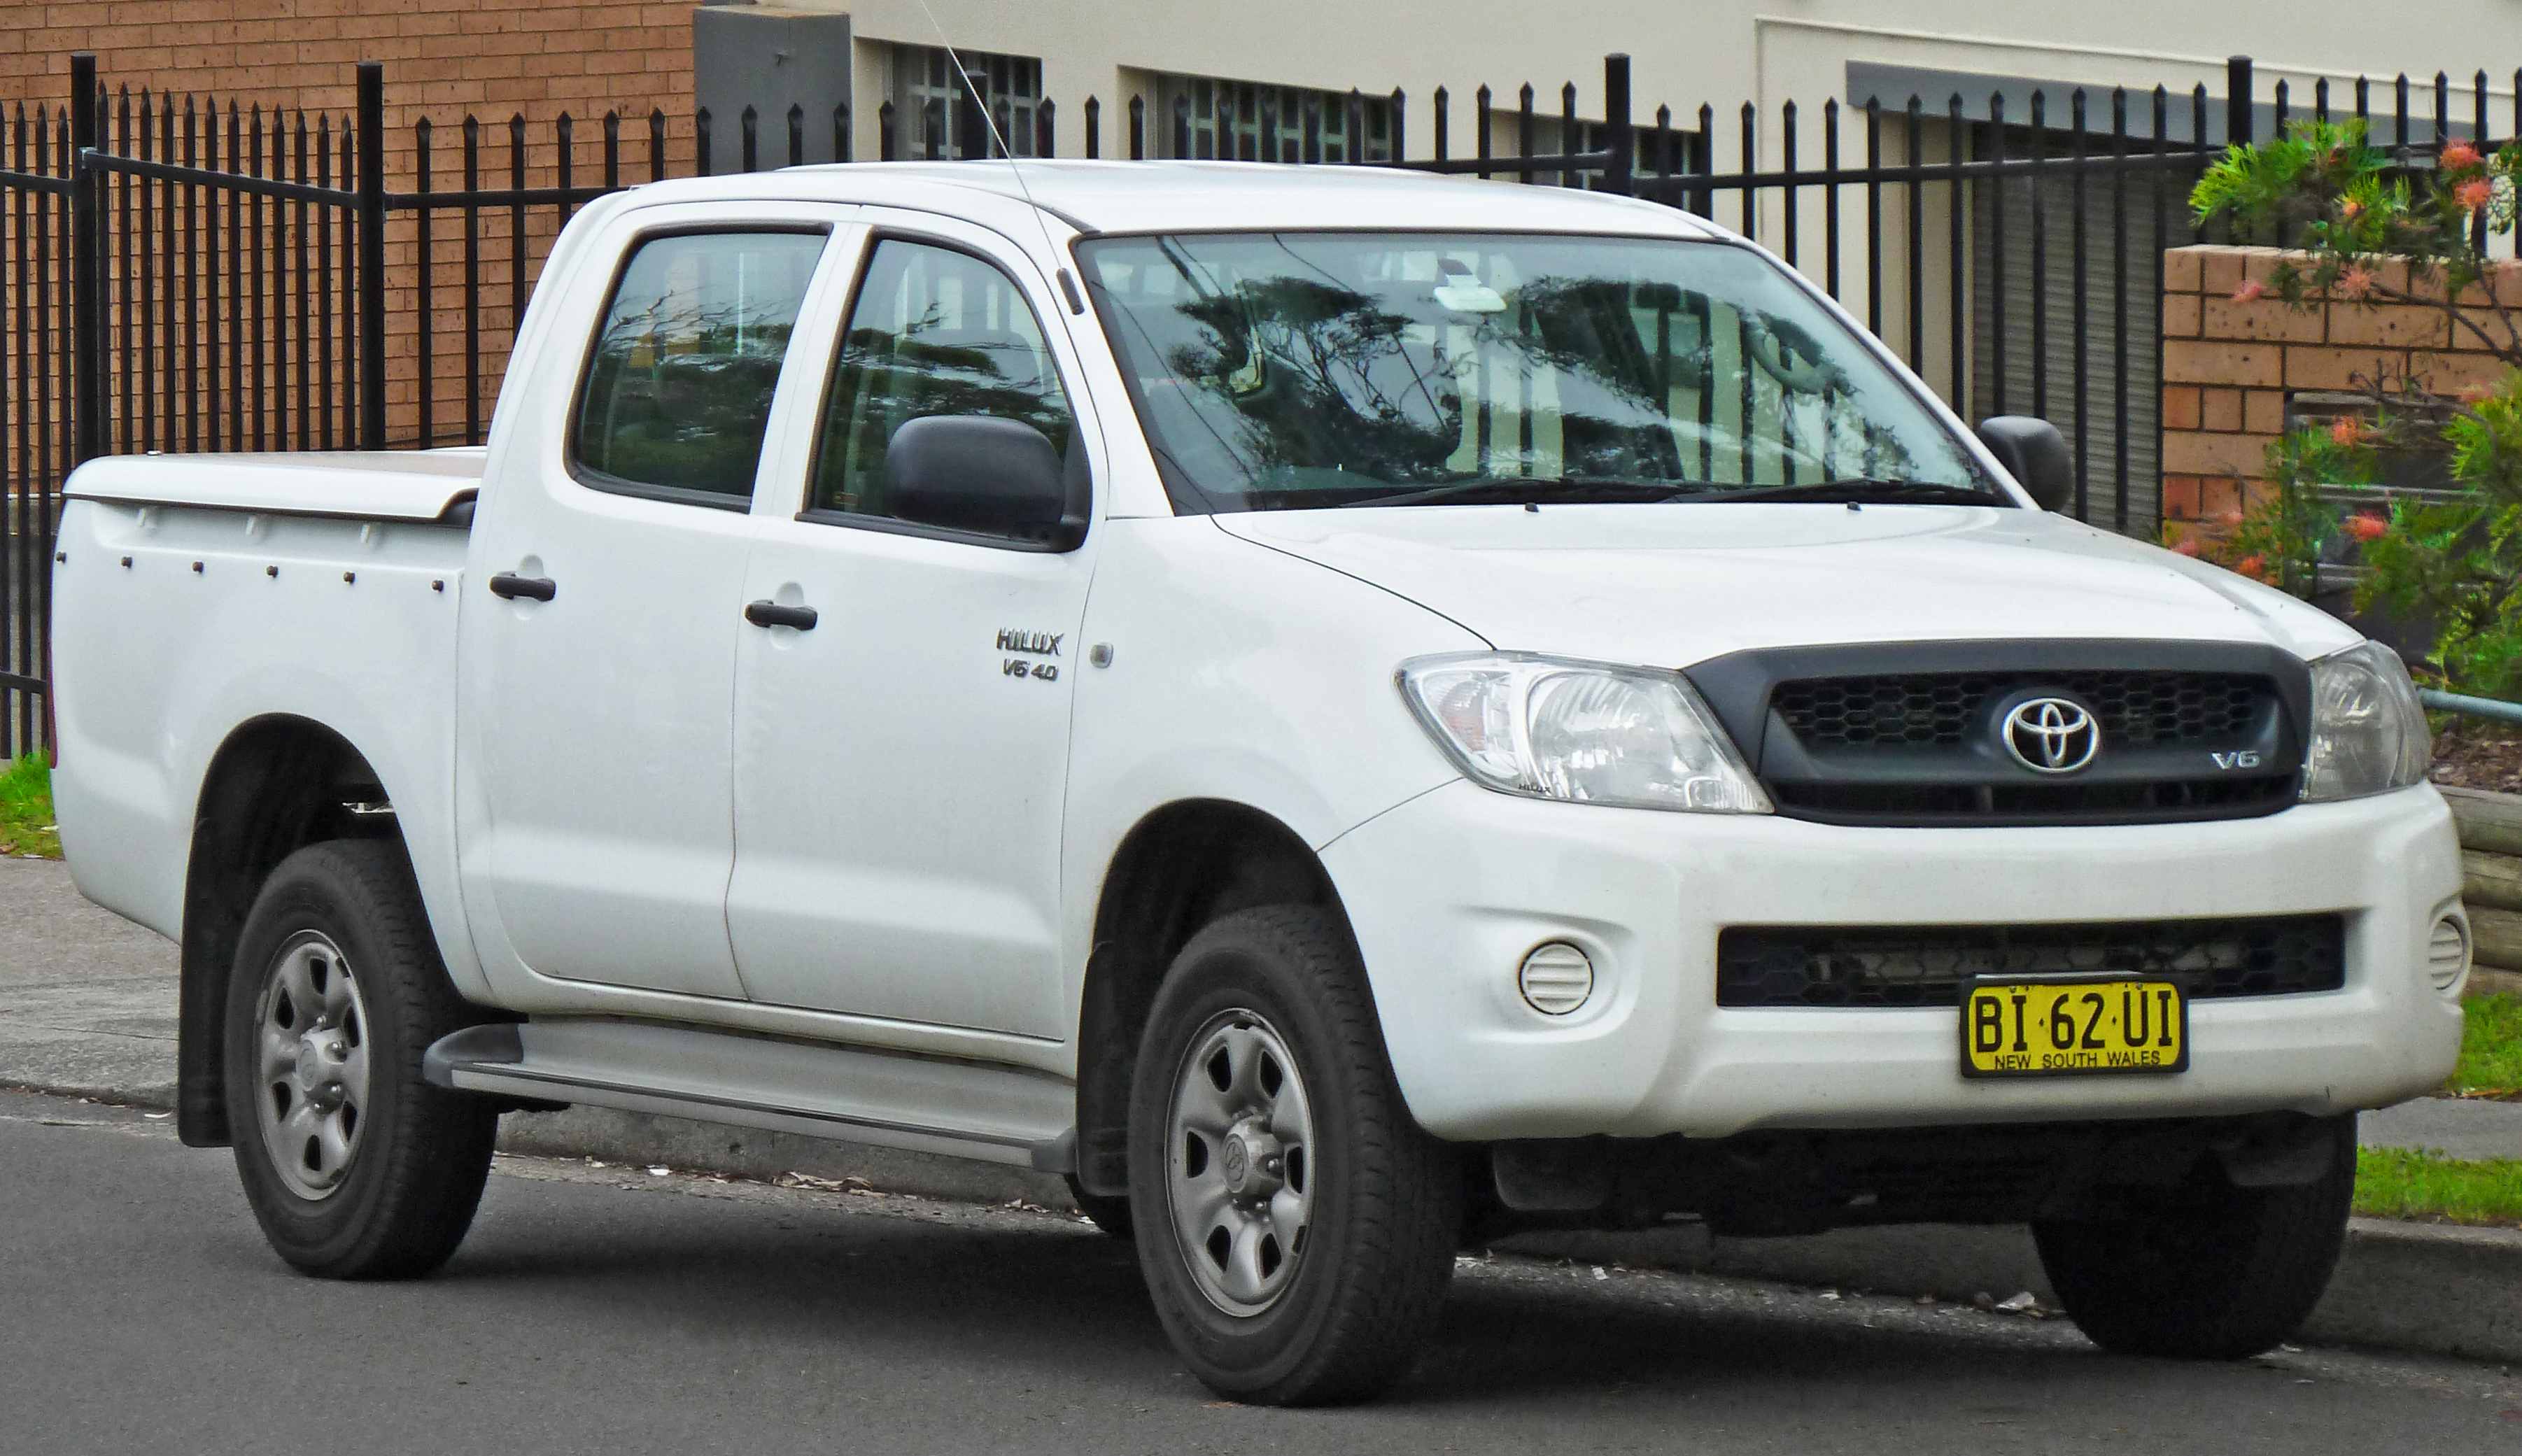 toyota hilux vigo cars for sale in myanmar, found 26 carsdbtoyota hilux vigo toyota hilux vigo cars for sale